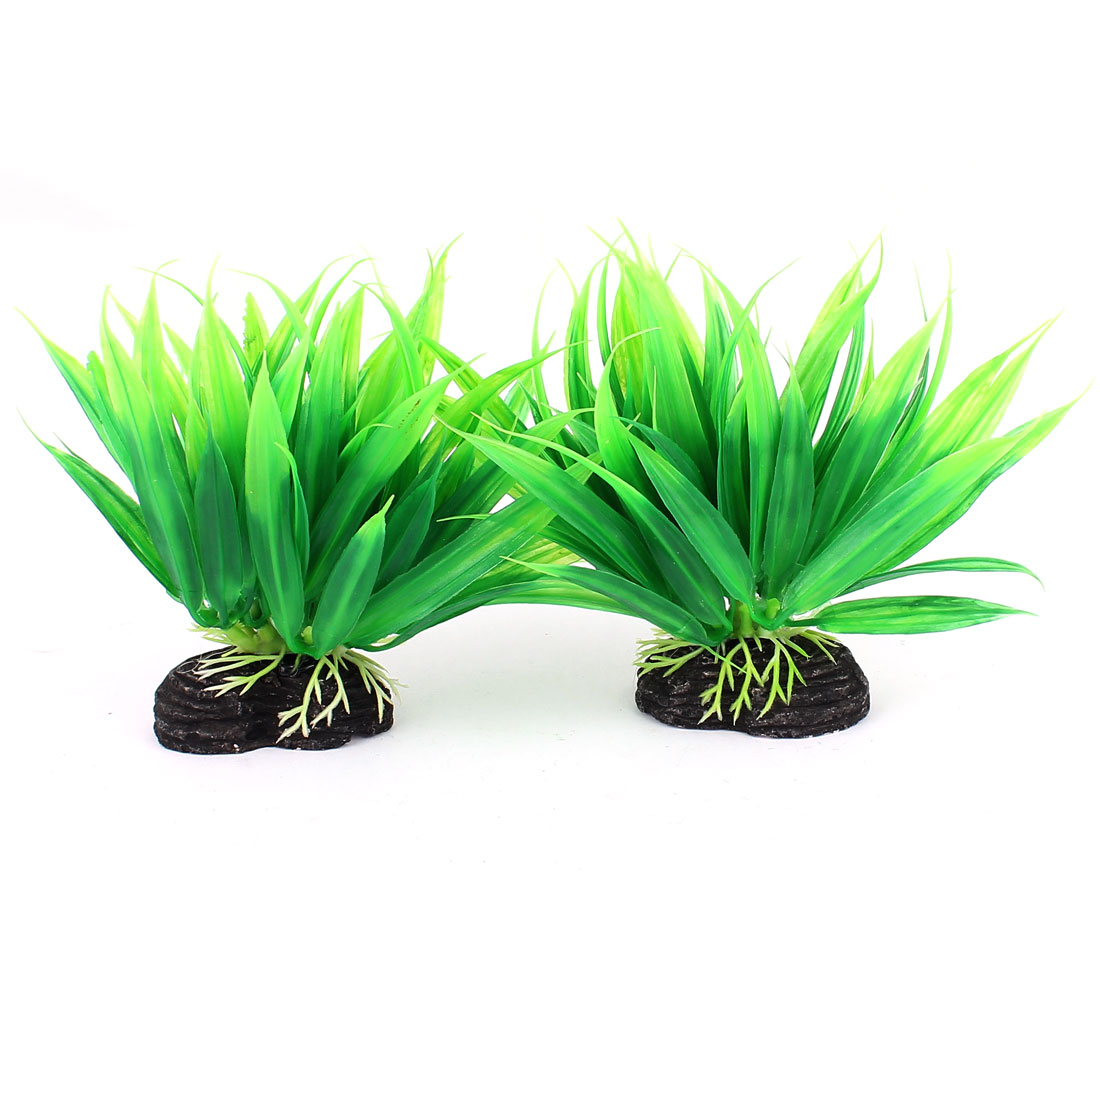 2pcs Green Plastic Manmade Aquarium Aquatic Plant Ornament for Fishbowl Fish Tank